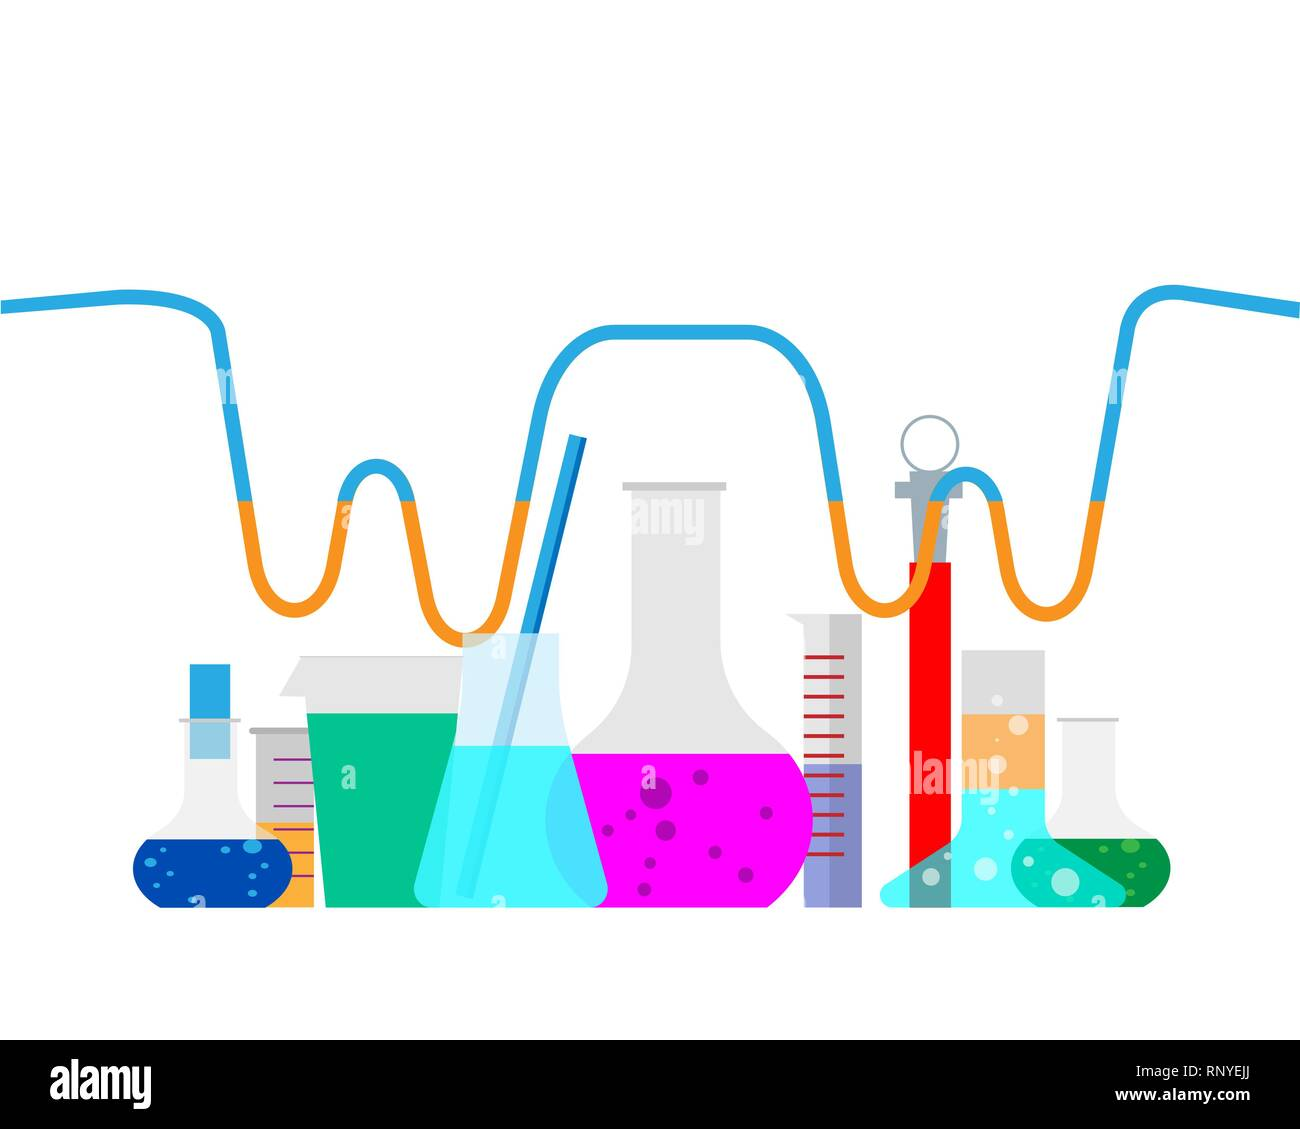 Vector illustration. Laboratory. Chemical research. Flat study background. Creative process. Stock Vector